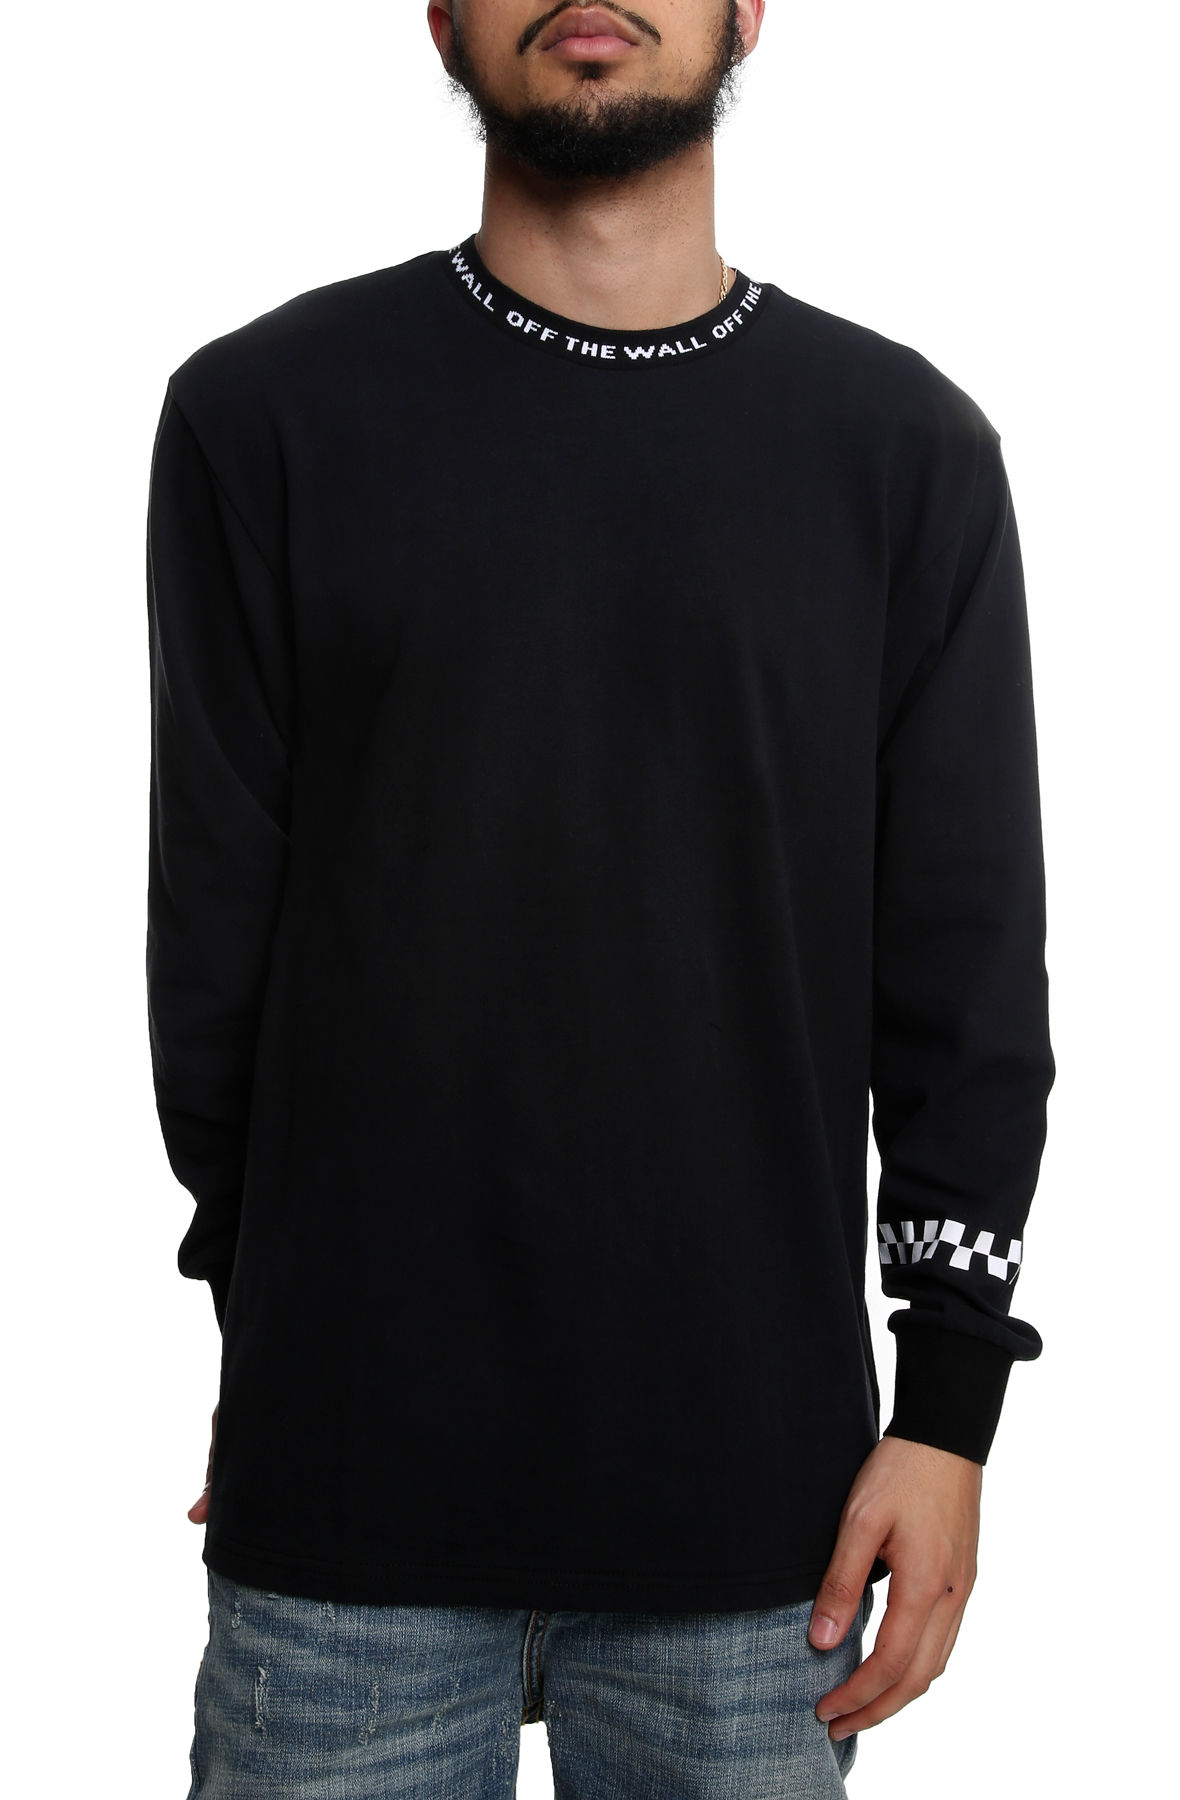 Image of The Off The Wall Jacquard Long Sleeve Tee in Black